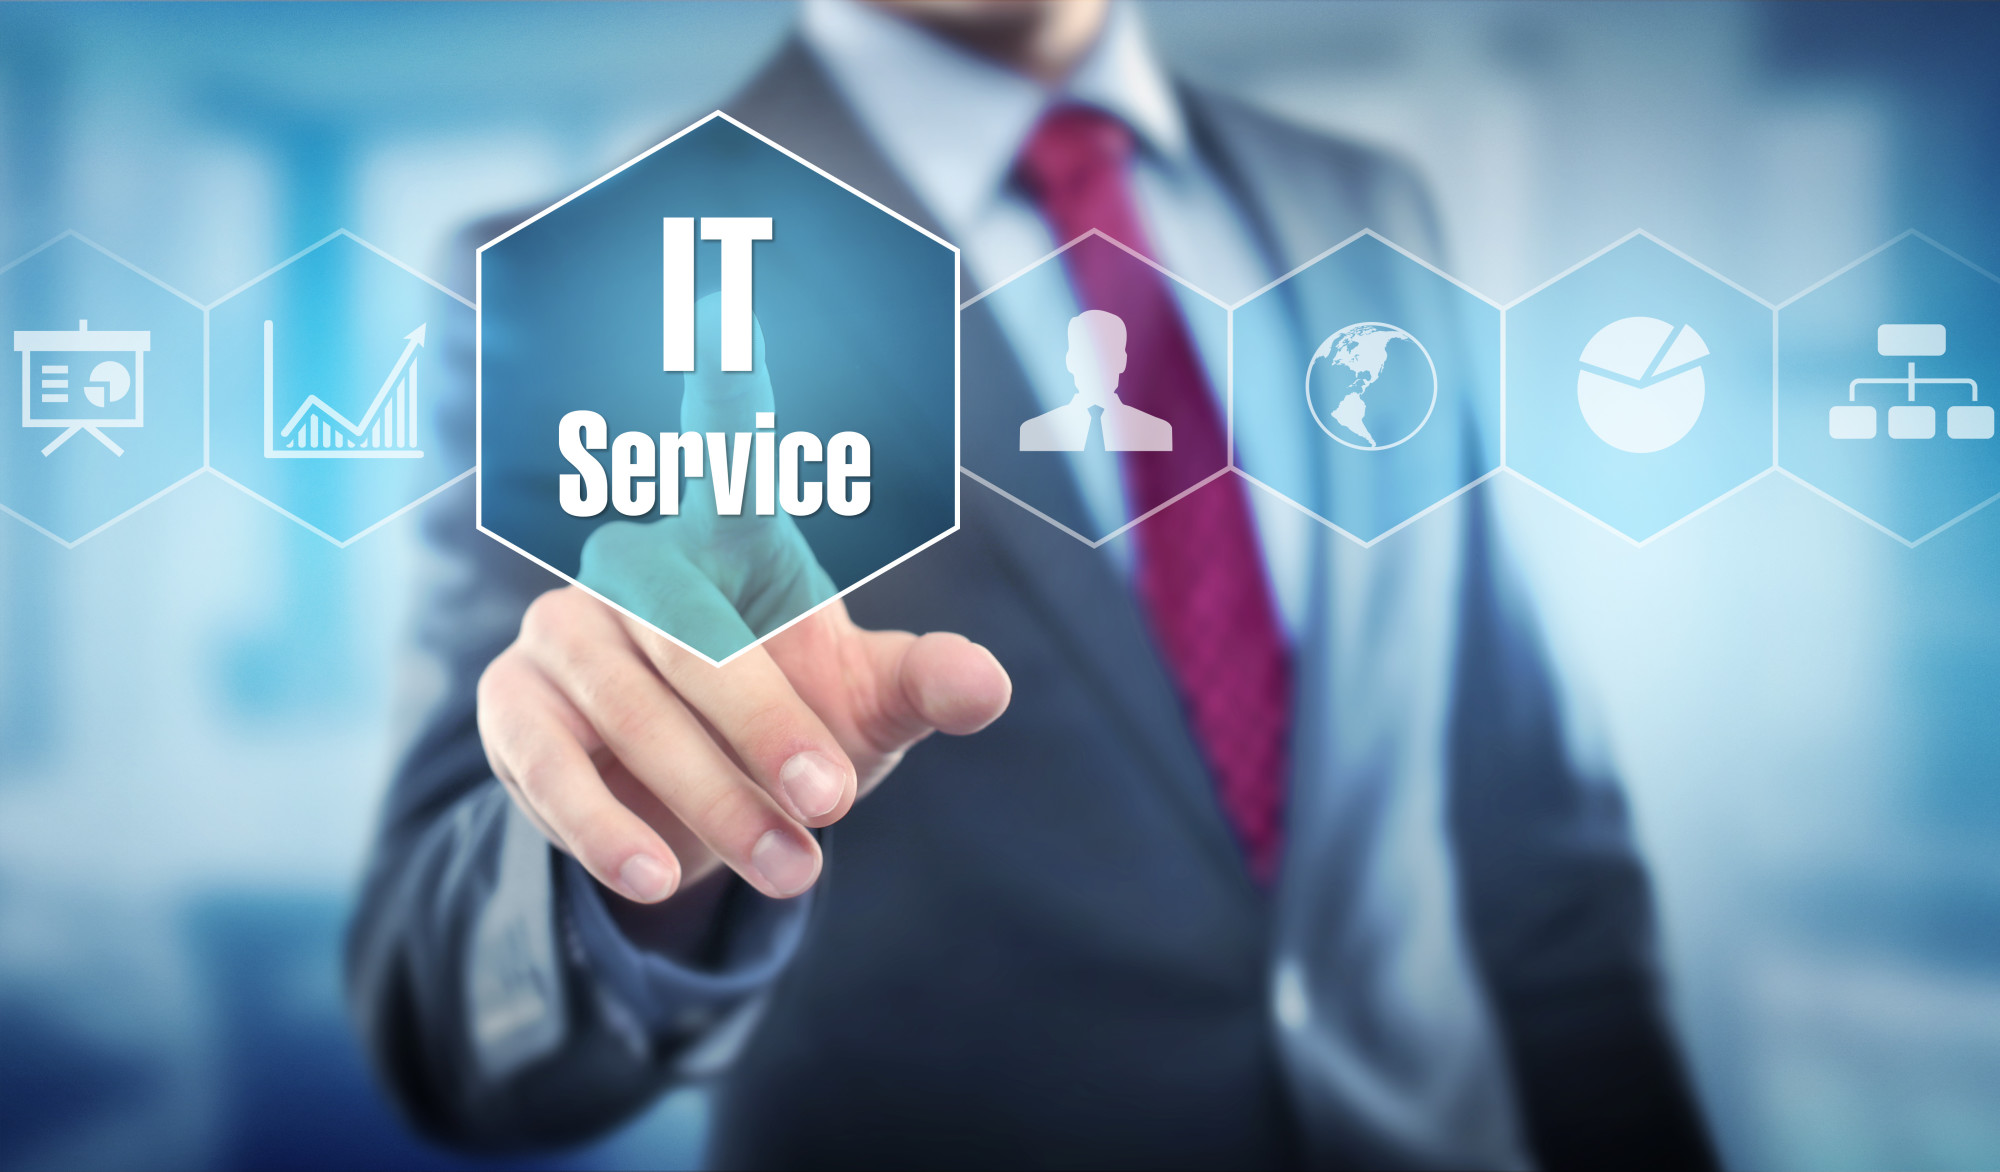 4 Key Questions to Ask Before Outsourcing IT Services